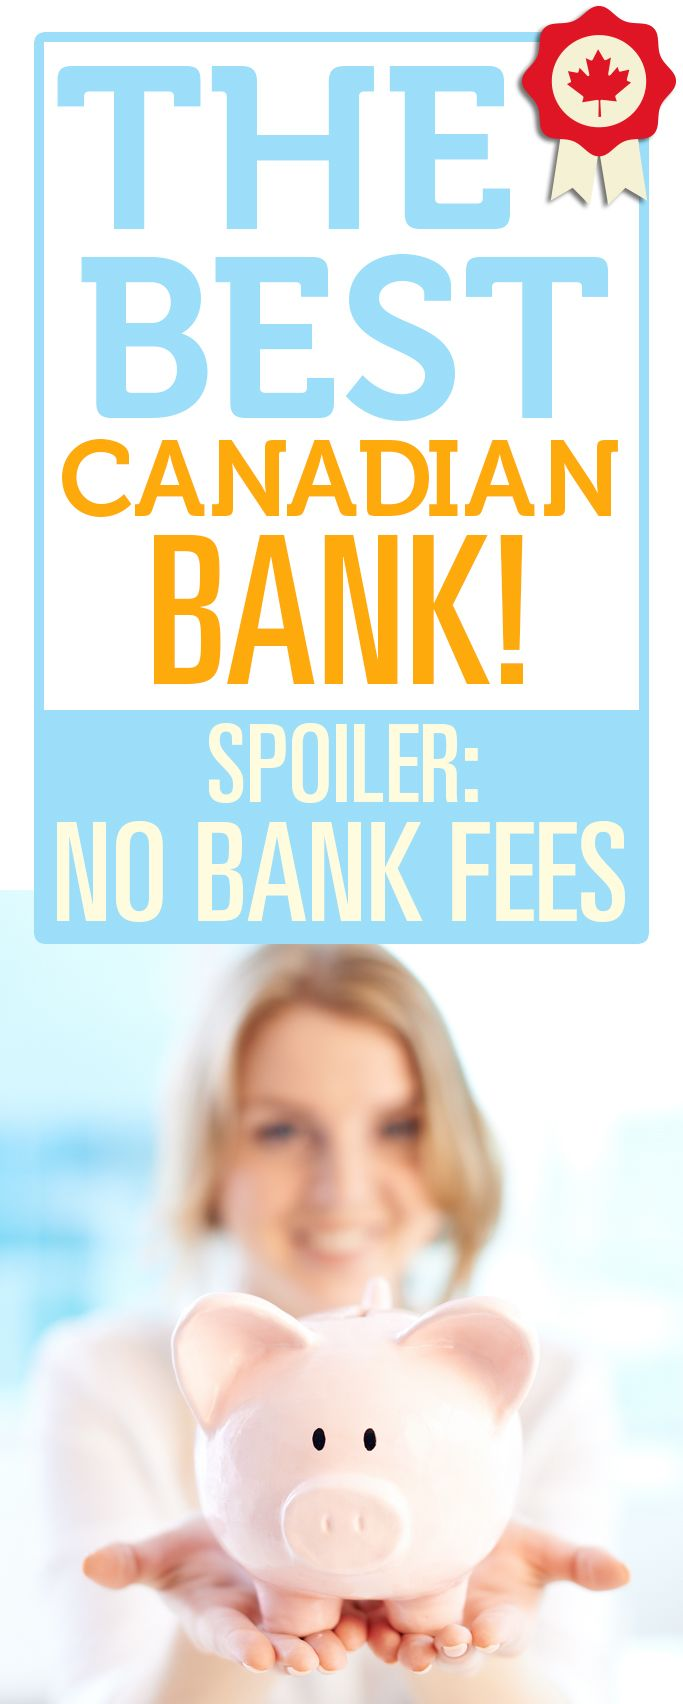 Tangerine has no bank fees! If you're paying for a service, like face-to-face and you're not using it, then you should stop paying for it. #nobankfees #moneymanage #cutcosts #bankaccount #canadian